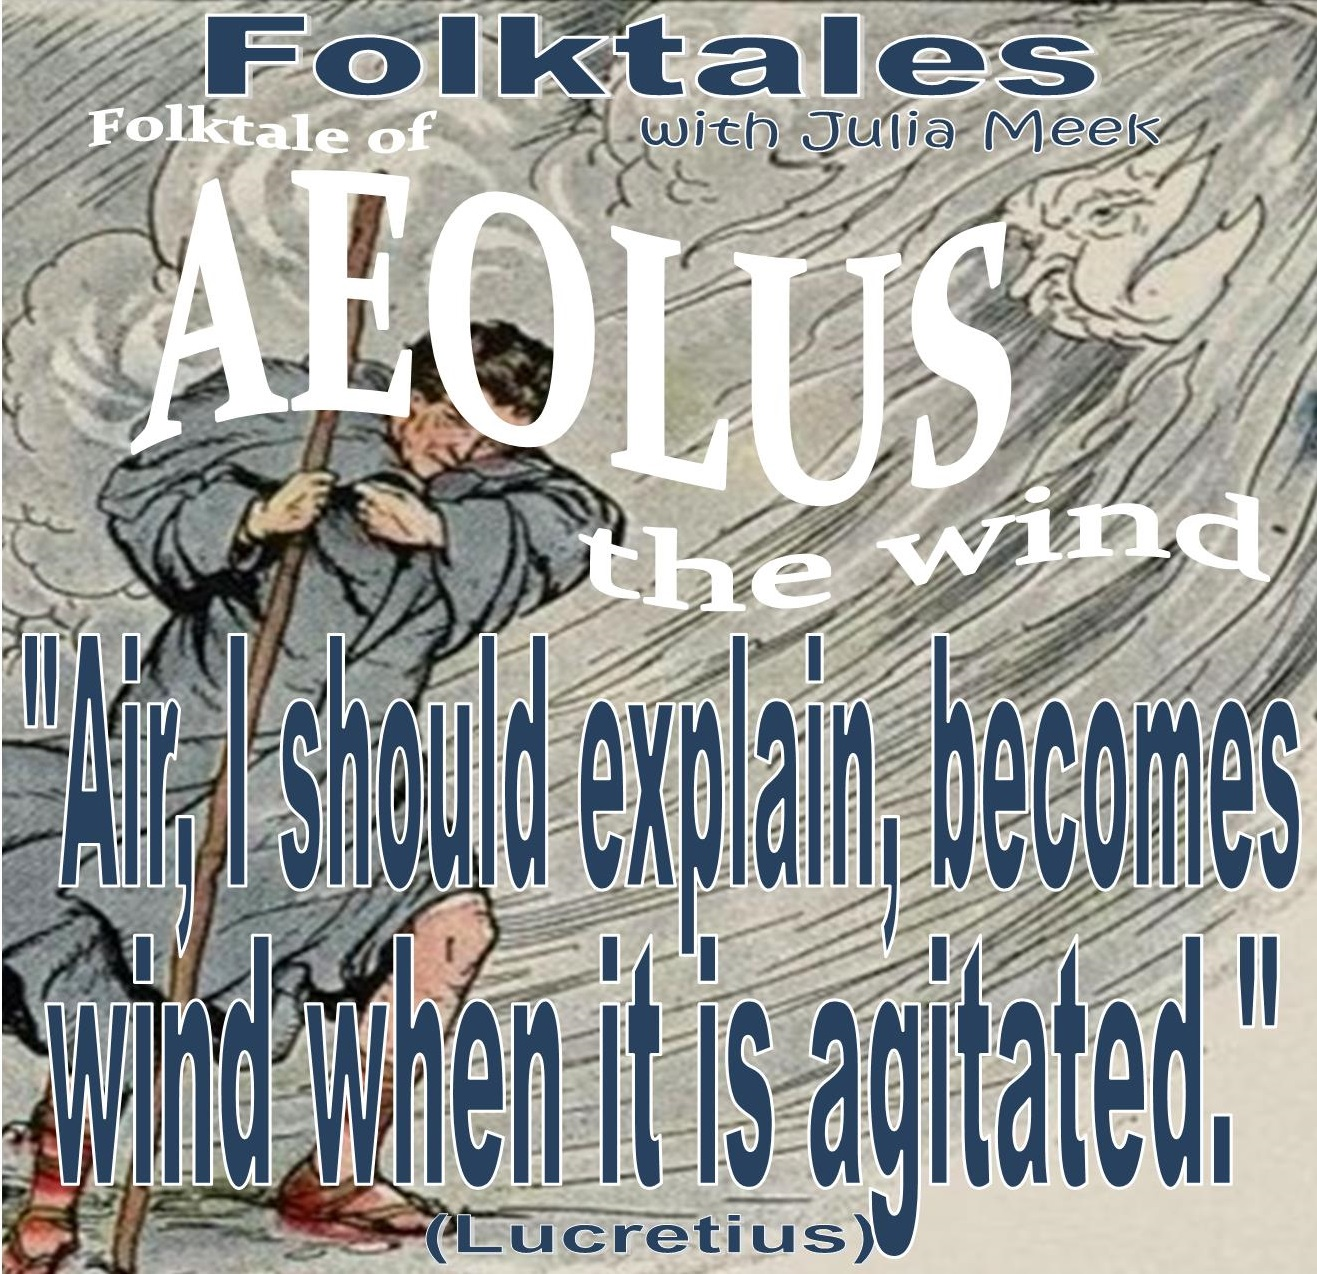 Caption: WBOI's Folkale of Aeolus the Wind, Credit: Julia Meek